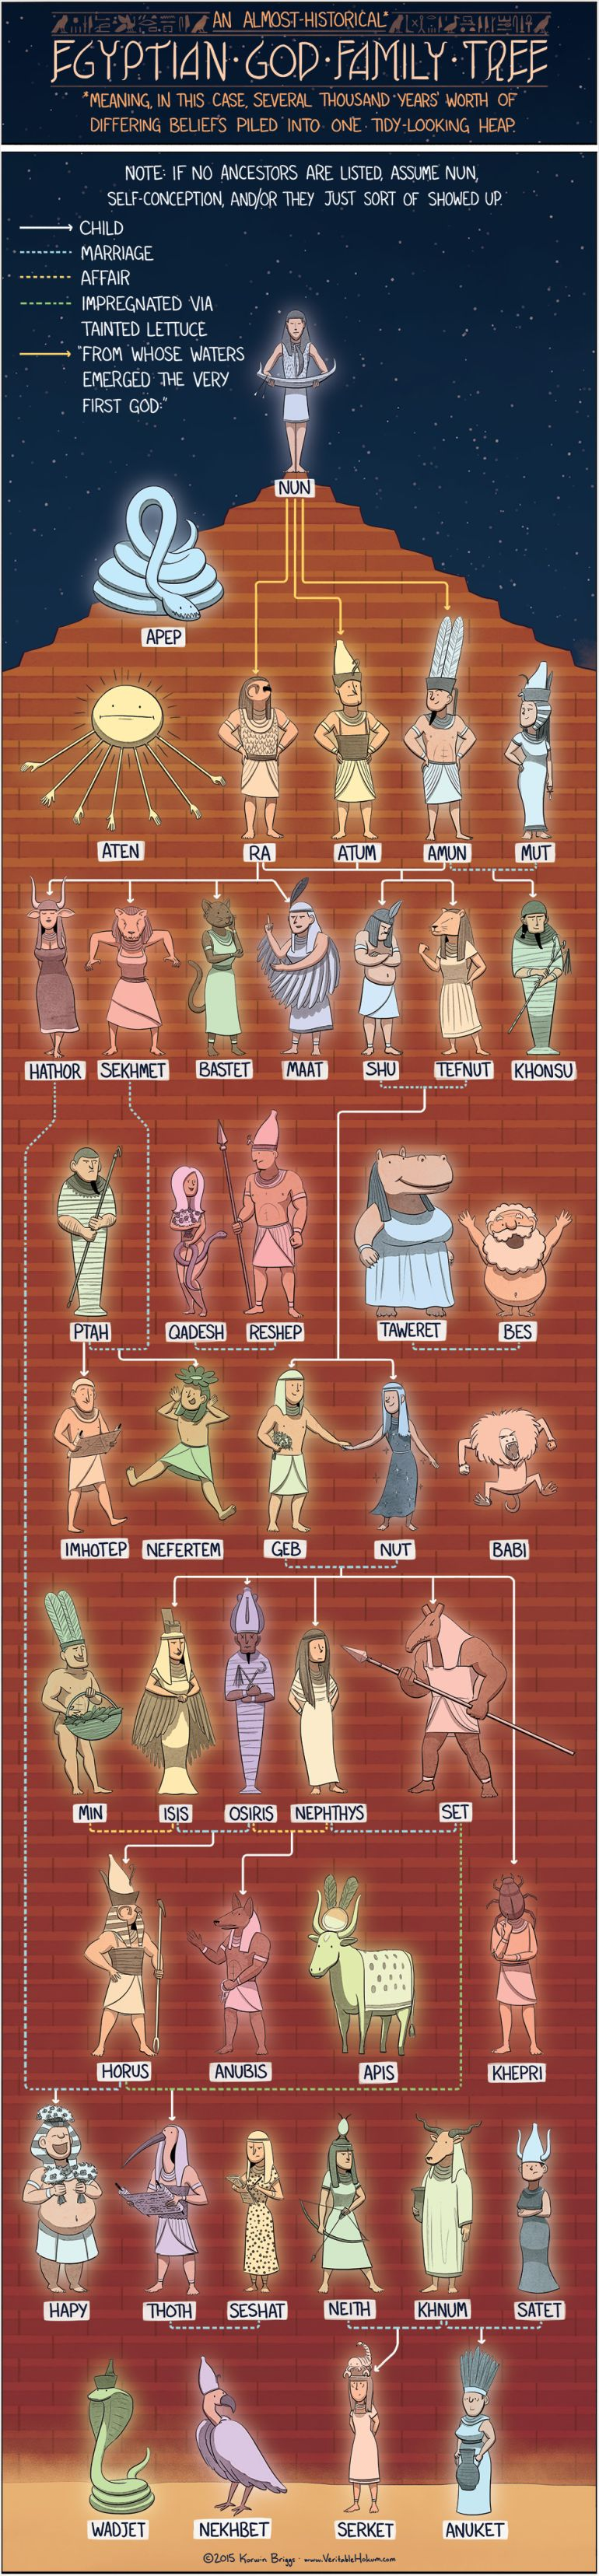 Take A Gander At The Family Trees Of Egyptian, Greek, And Norse Gods